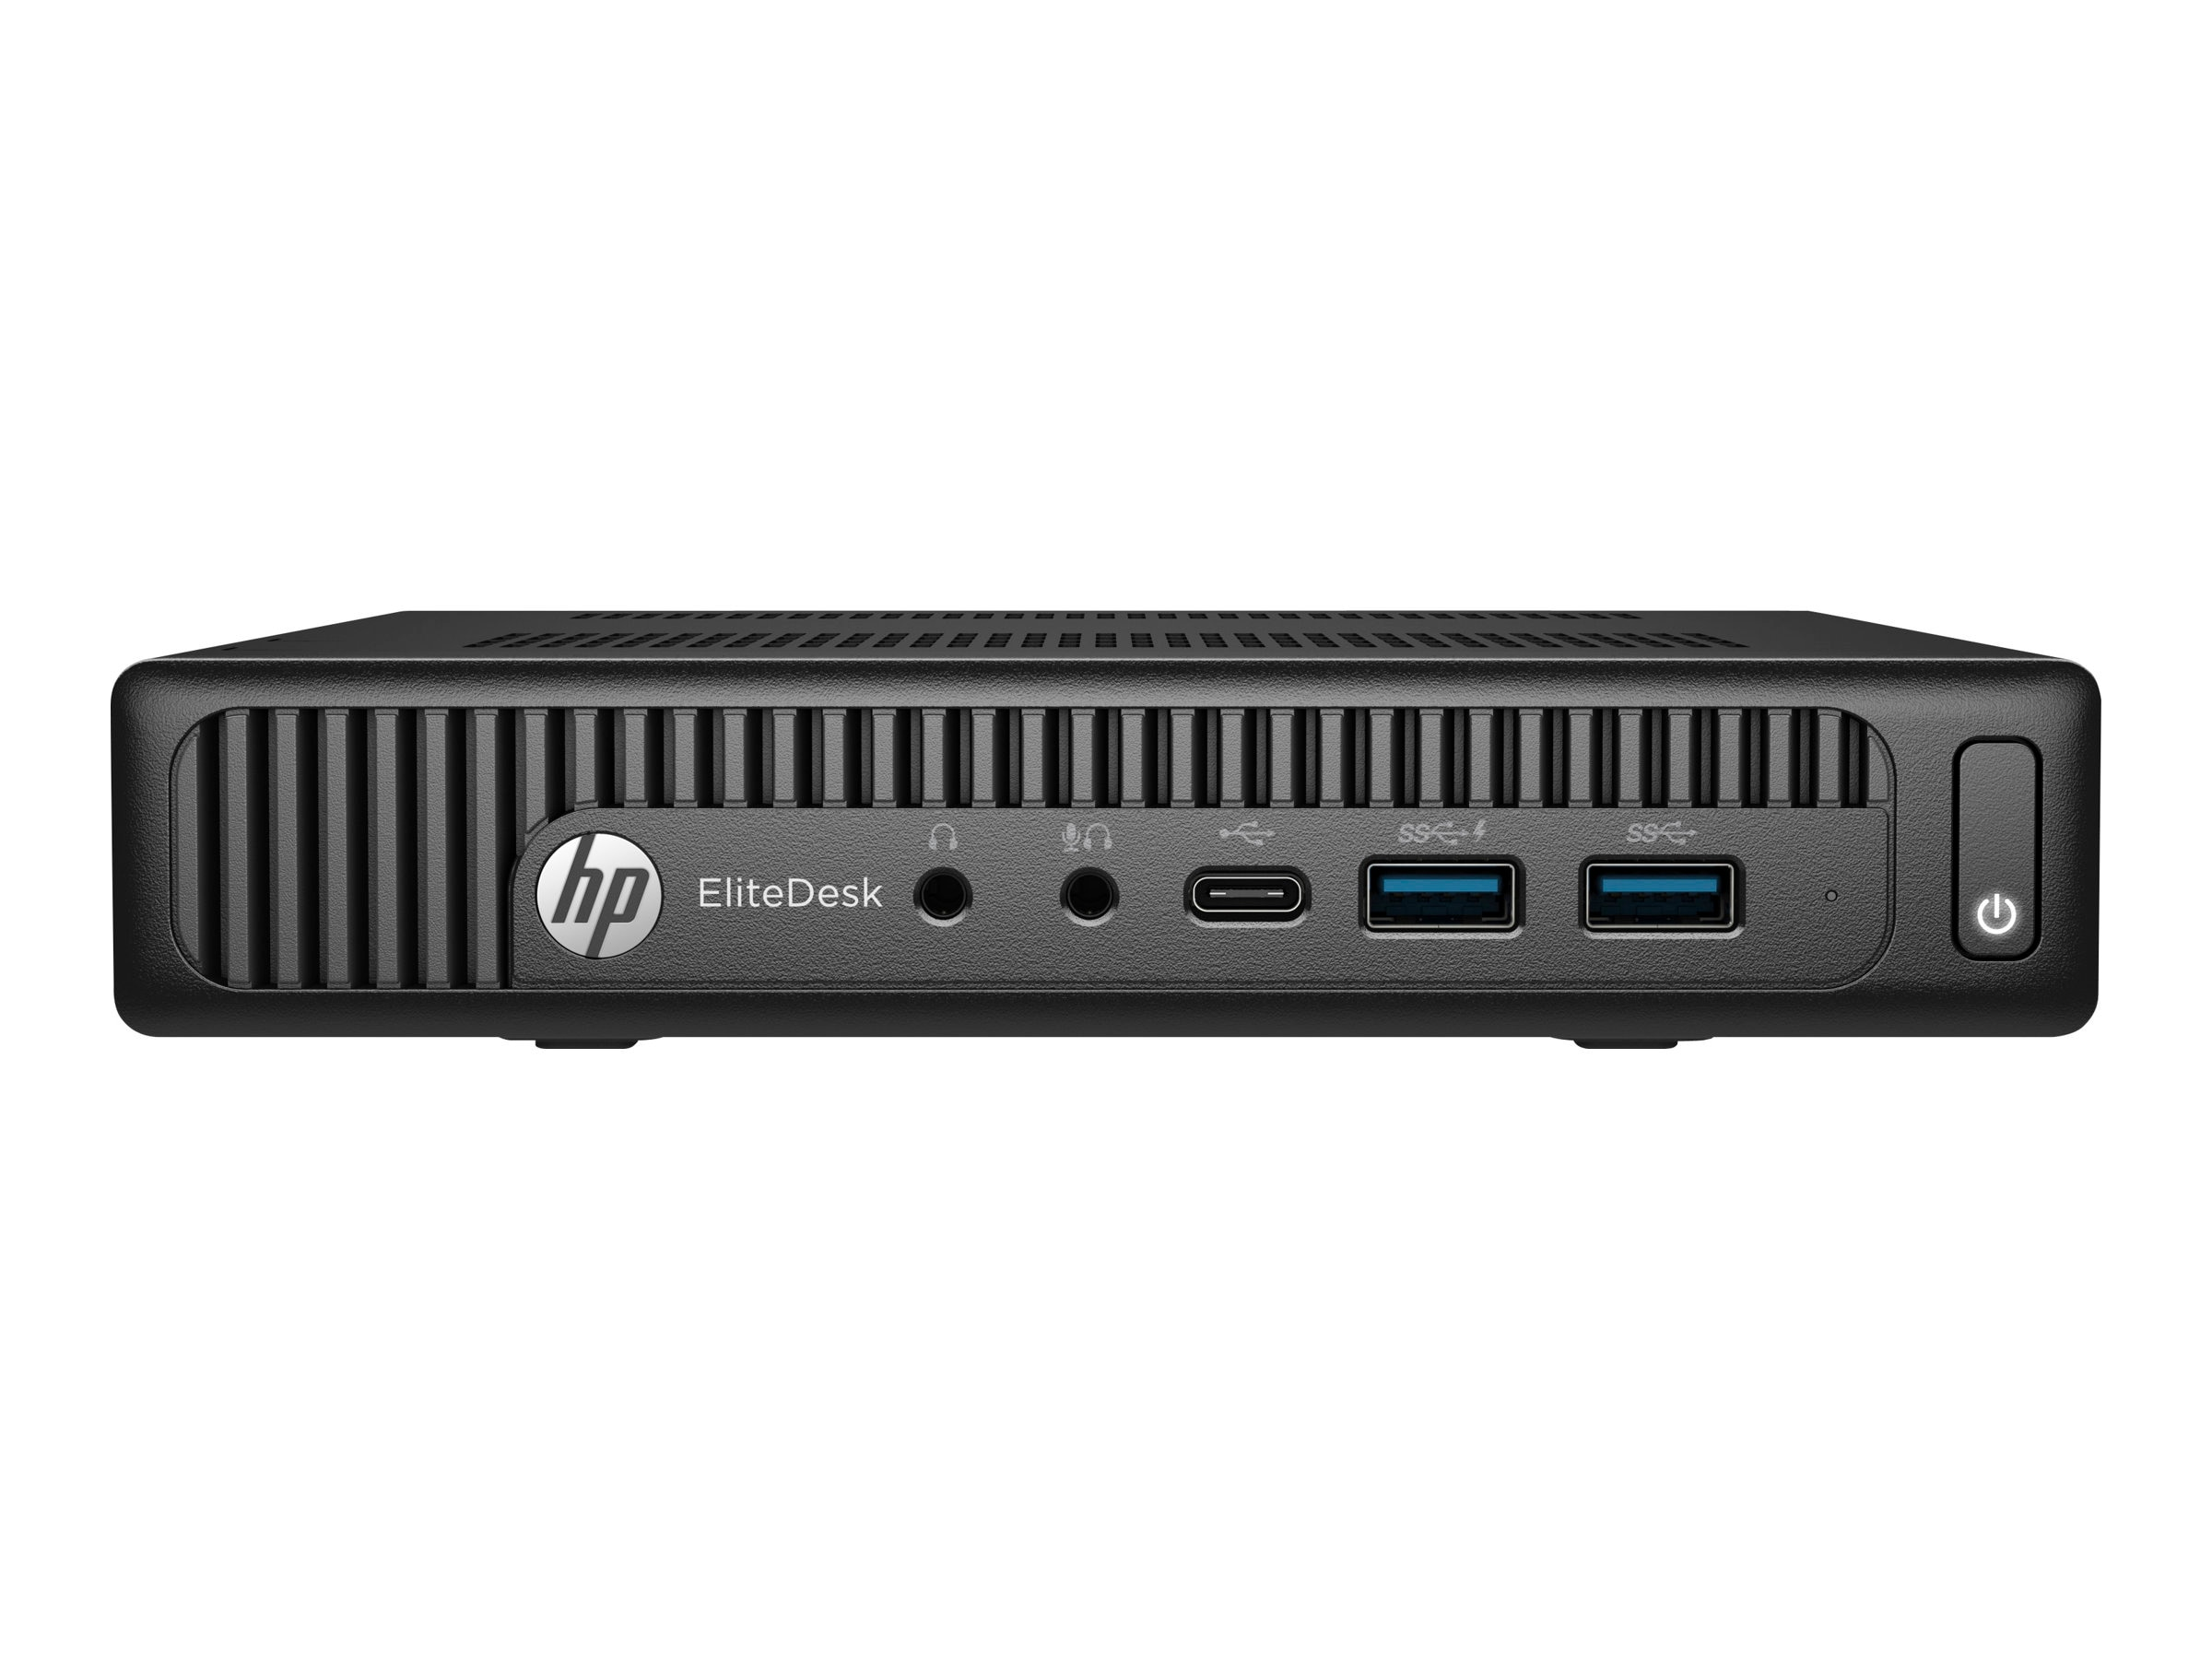 HP EliteDesk 800 G2 2.5GHz Core i5 4GB RAM 500GB hard drive